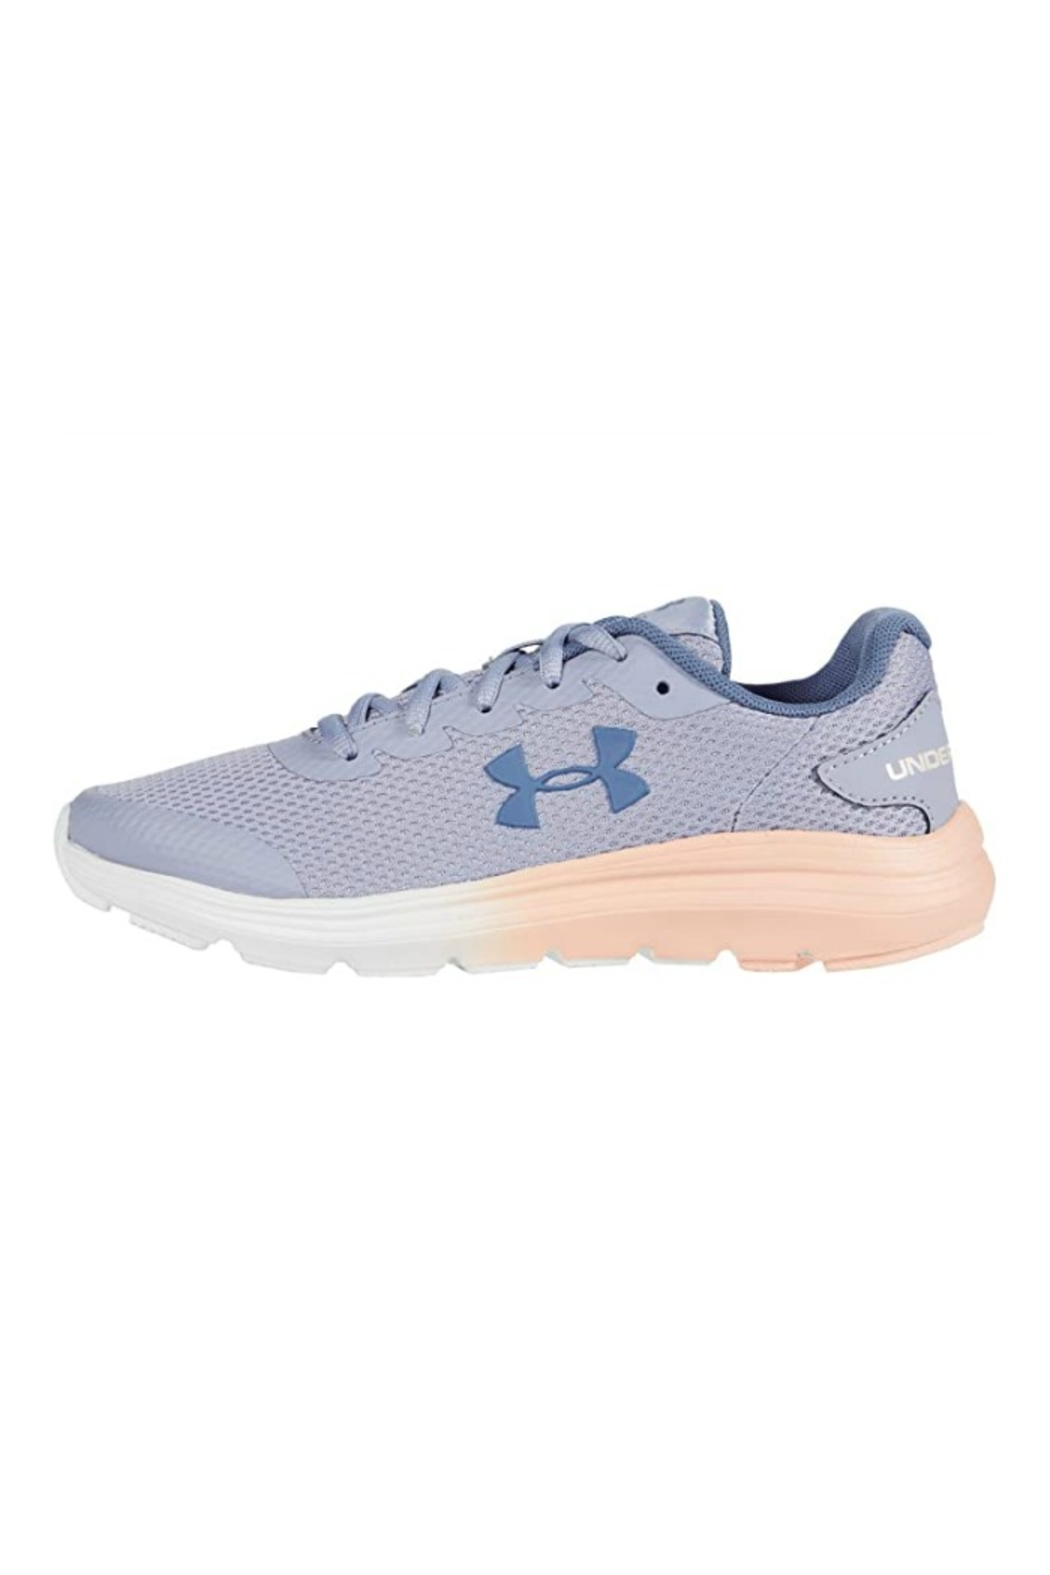 Under Armour Boys GS Surge 2 - Side Cropped Image